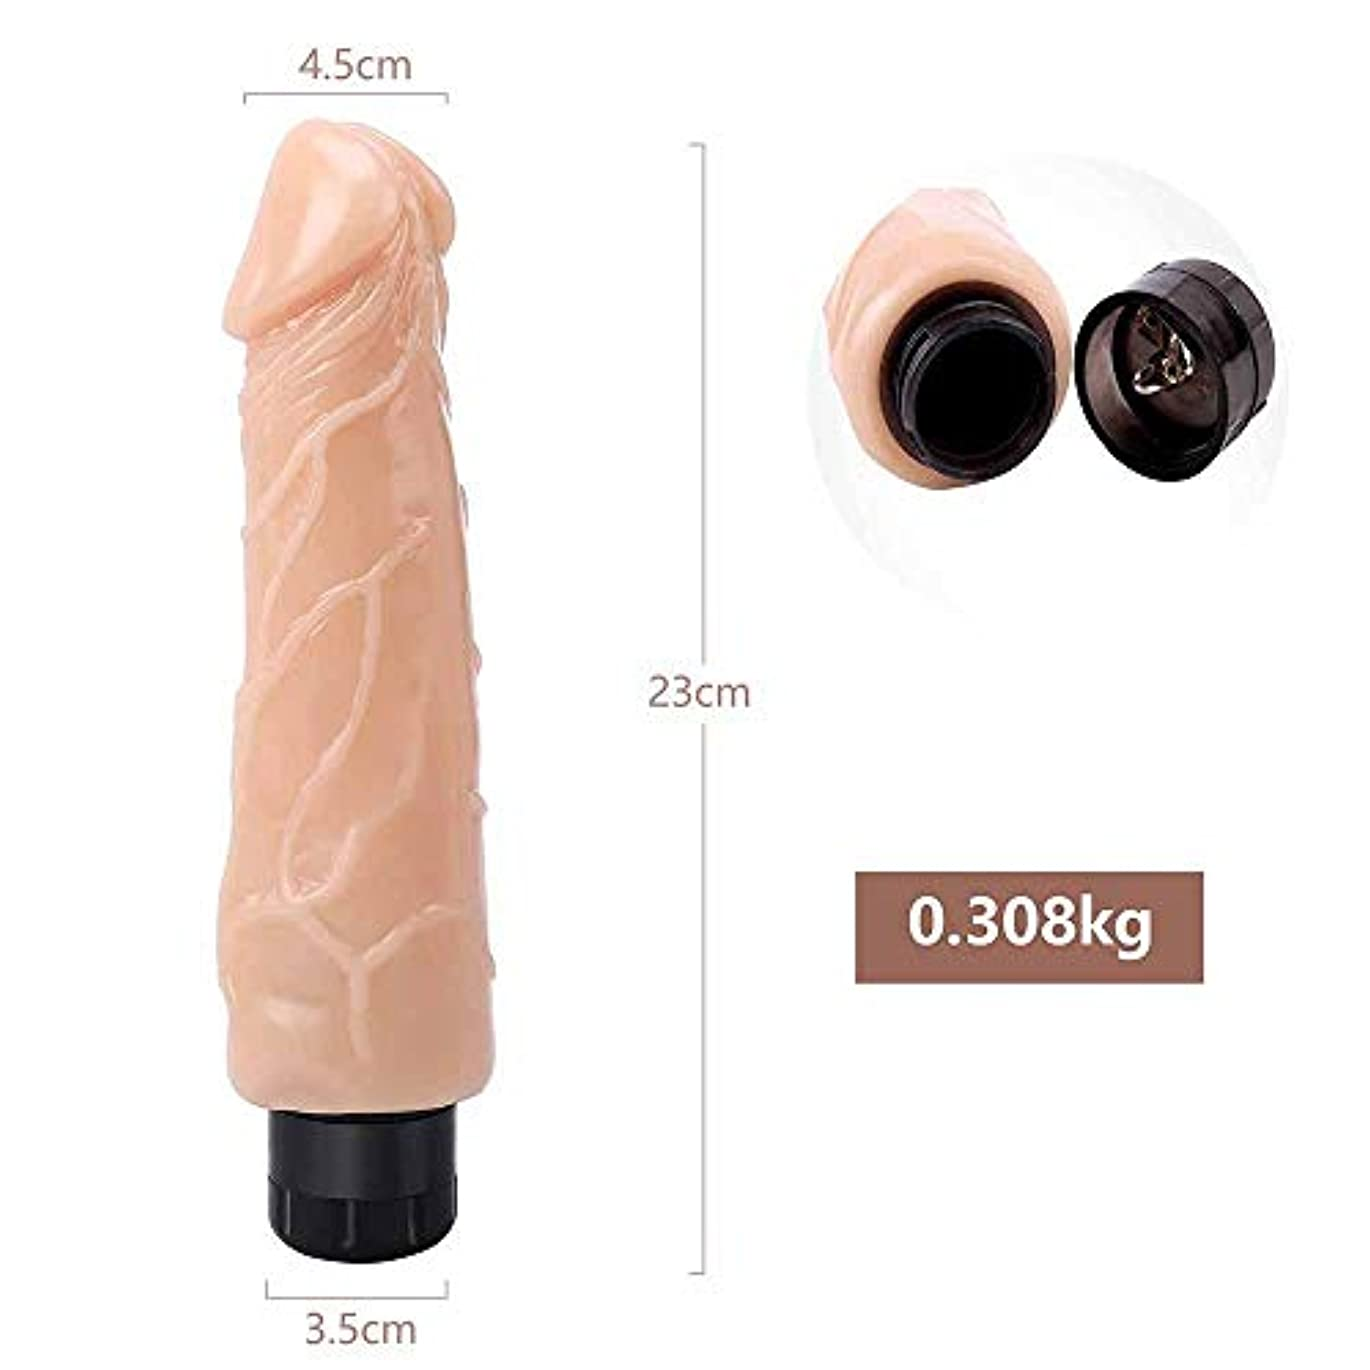 落花生小さなゴールドChicShop US 9 in Realistic-Dicks Women Relax Massager for Women男性用 、慎重なパッケージ